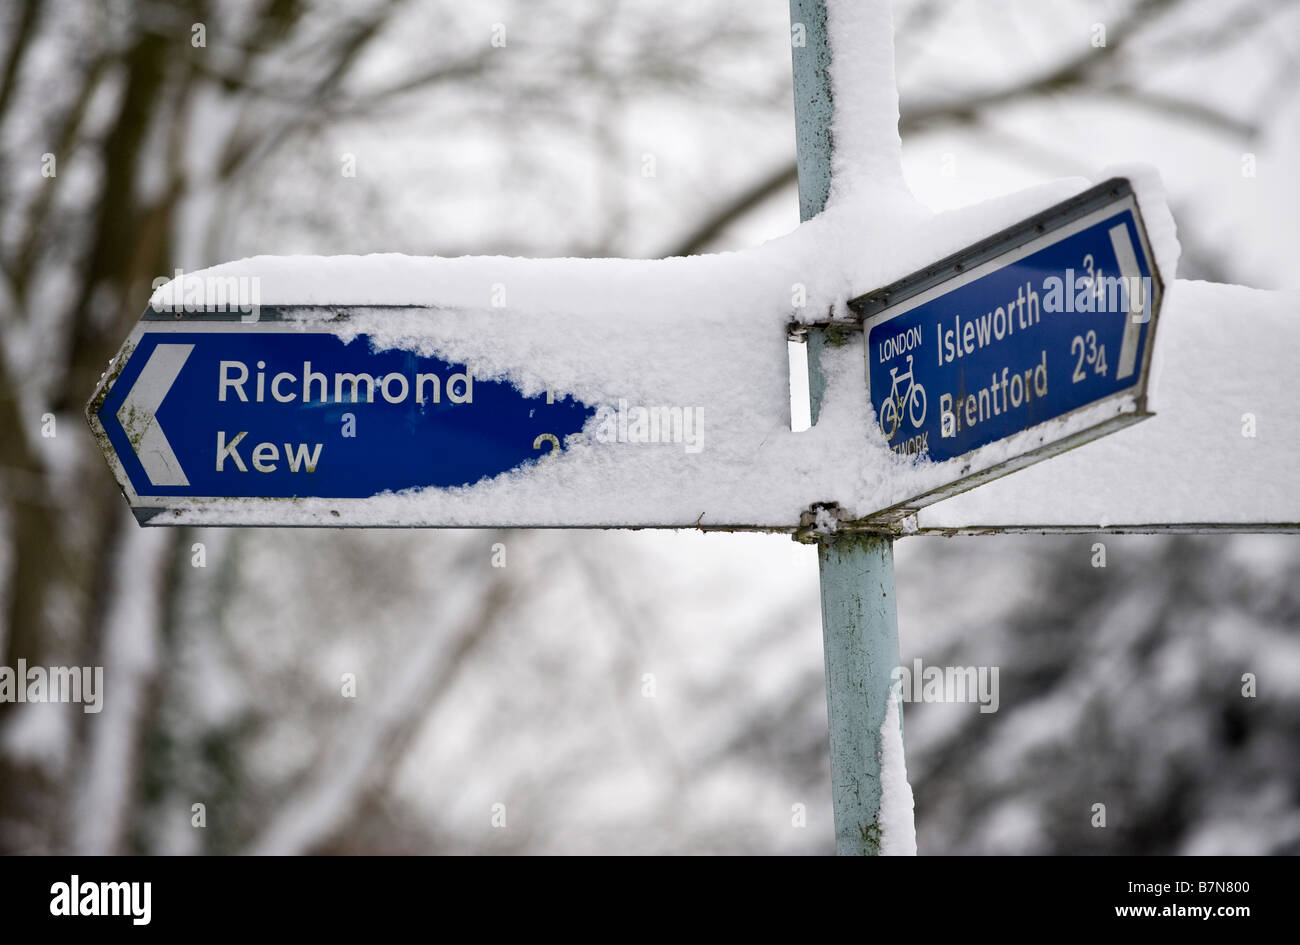 Richmond Kiew direction sign partially covered in snow - Stock Image